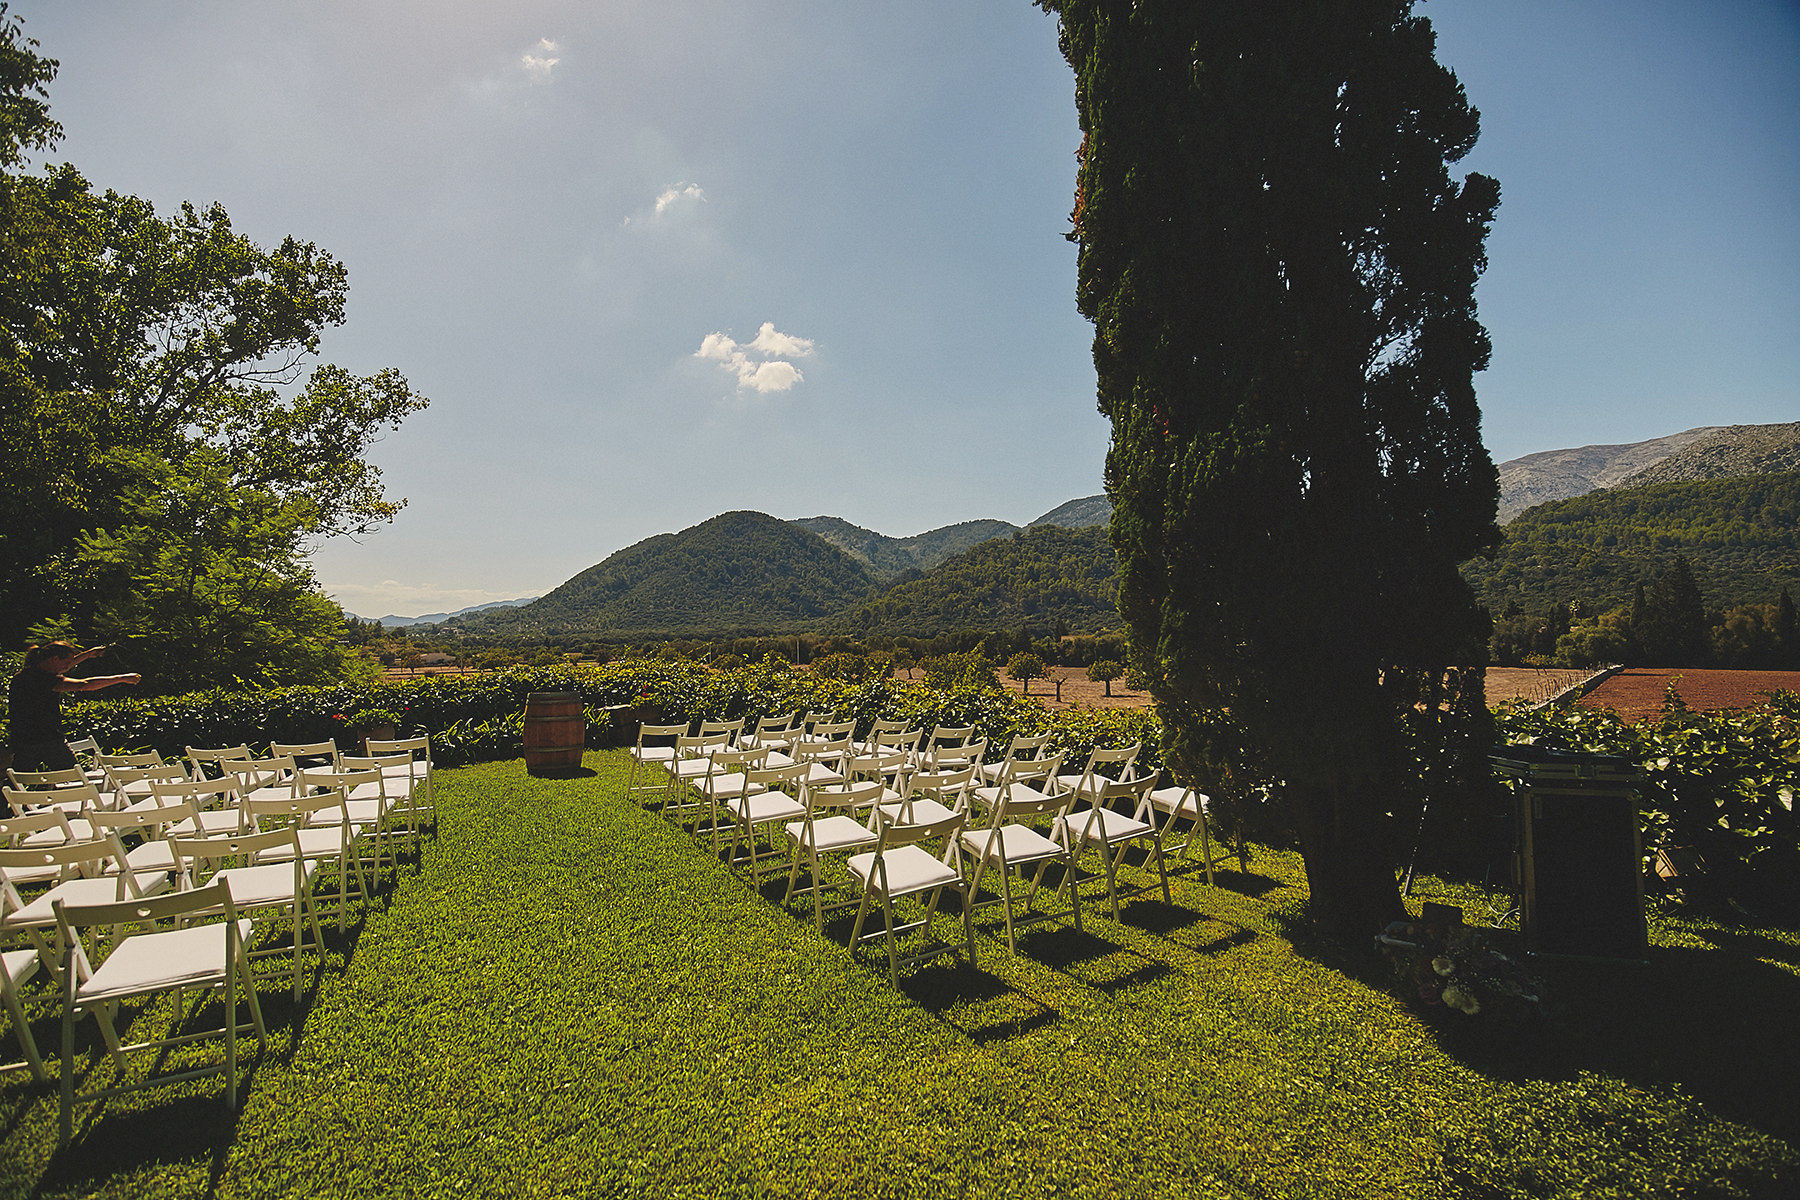 075 - Destination wedding in a magical Mallorca